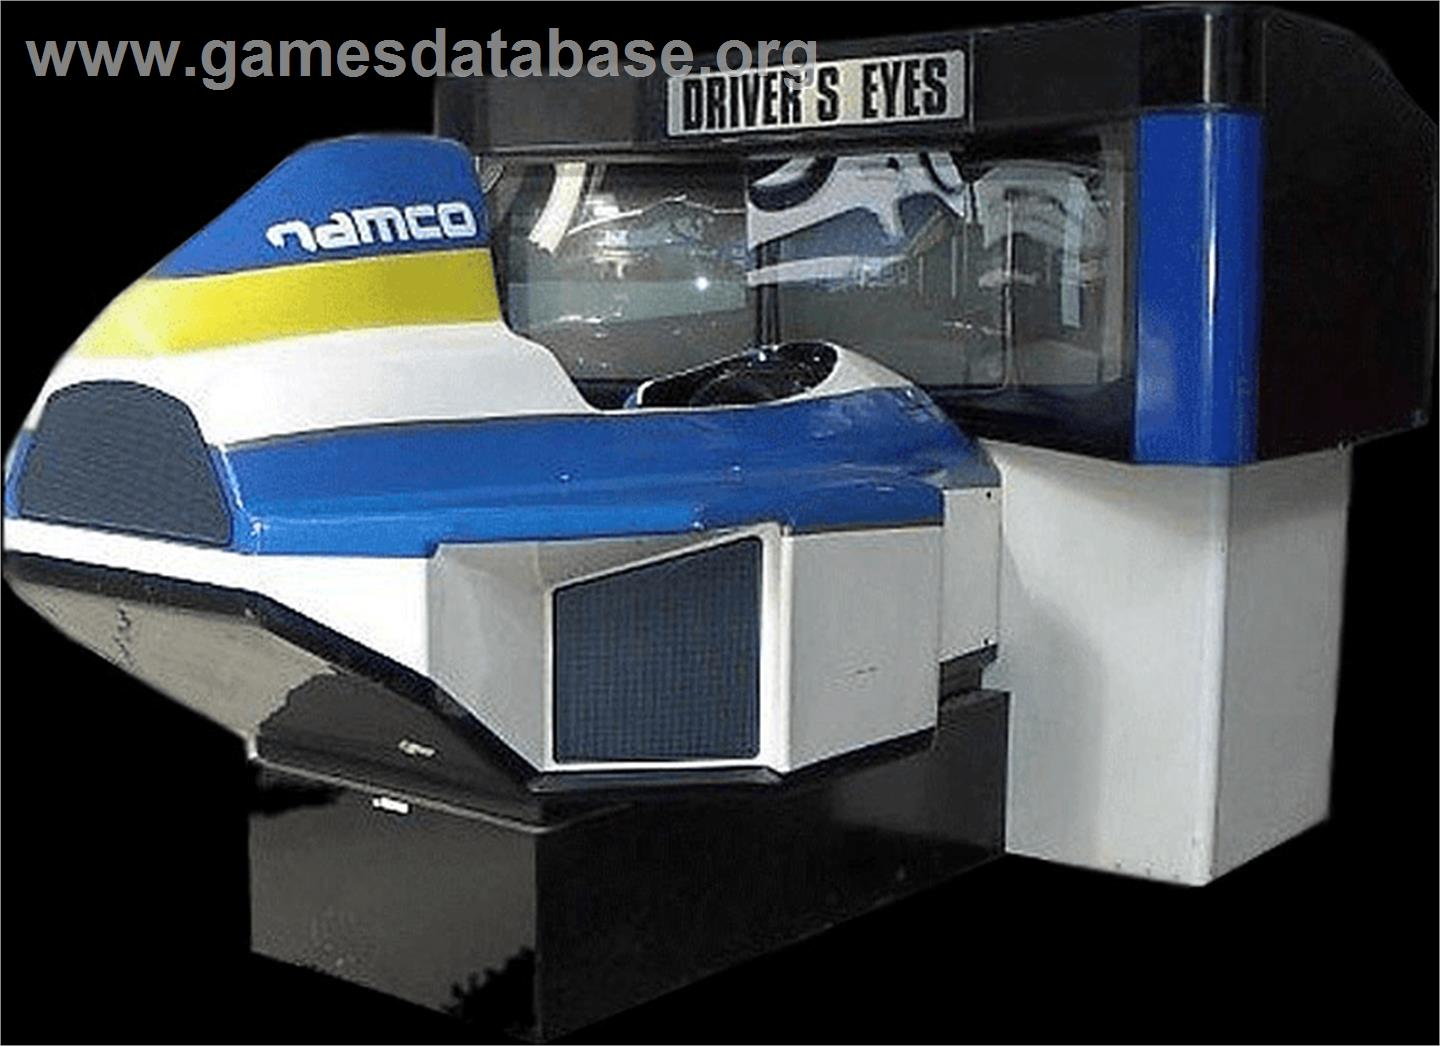 Driver's Eyes - Arcade - Artwork - Cabinet